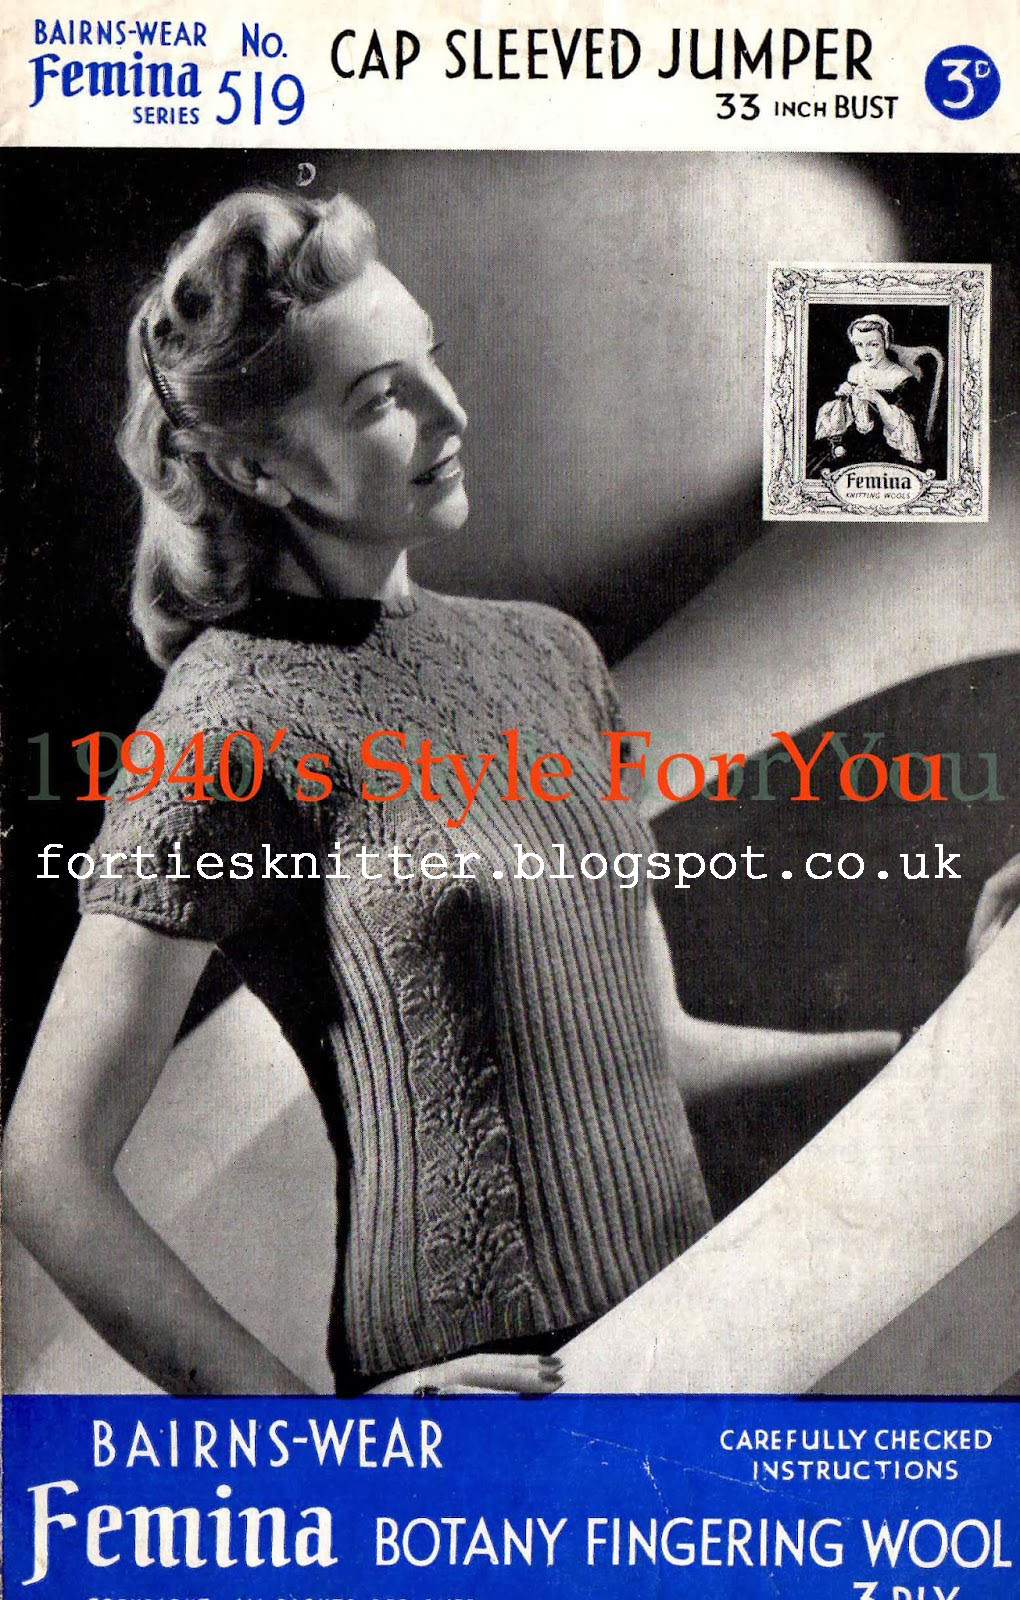 free pattern 1940's Knitting - Lady's Cap Sleeved Jumper